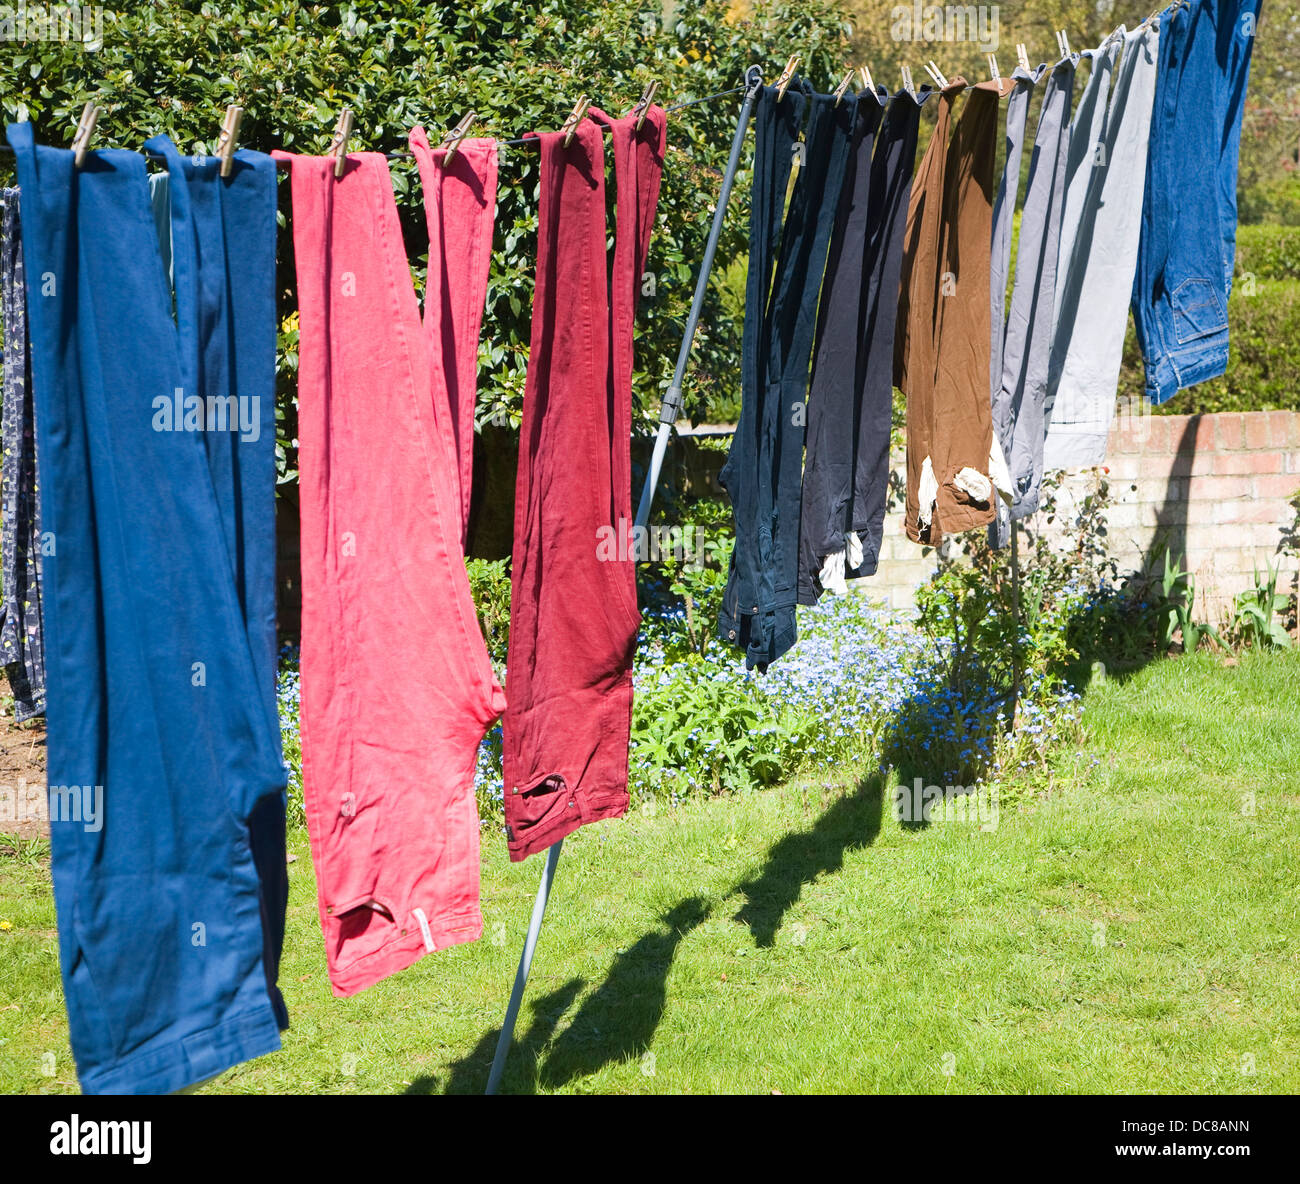 Washing line trousers drying in a garden on a sunny day - Stock Image